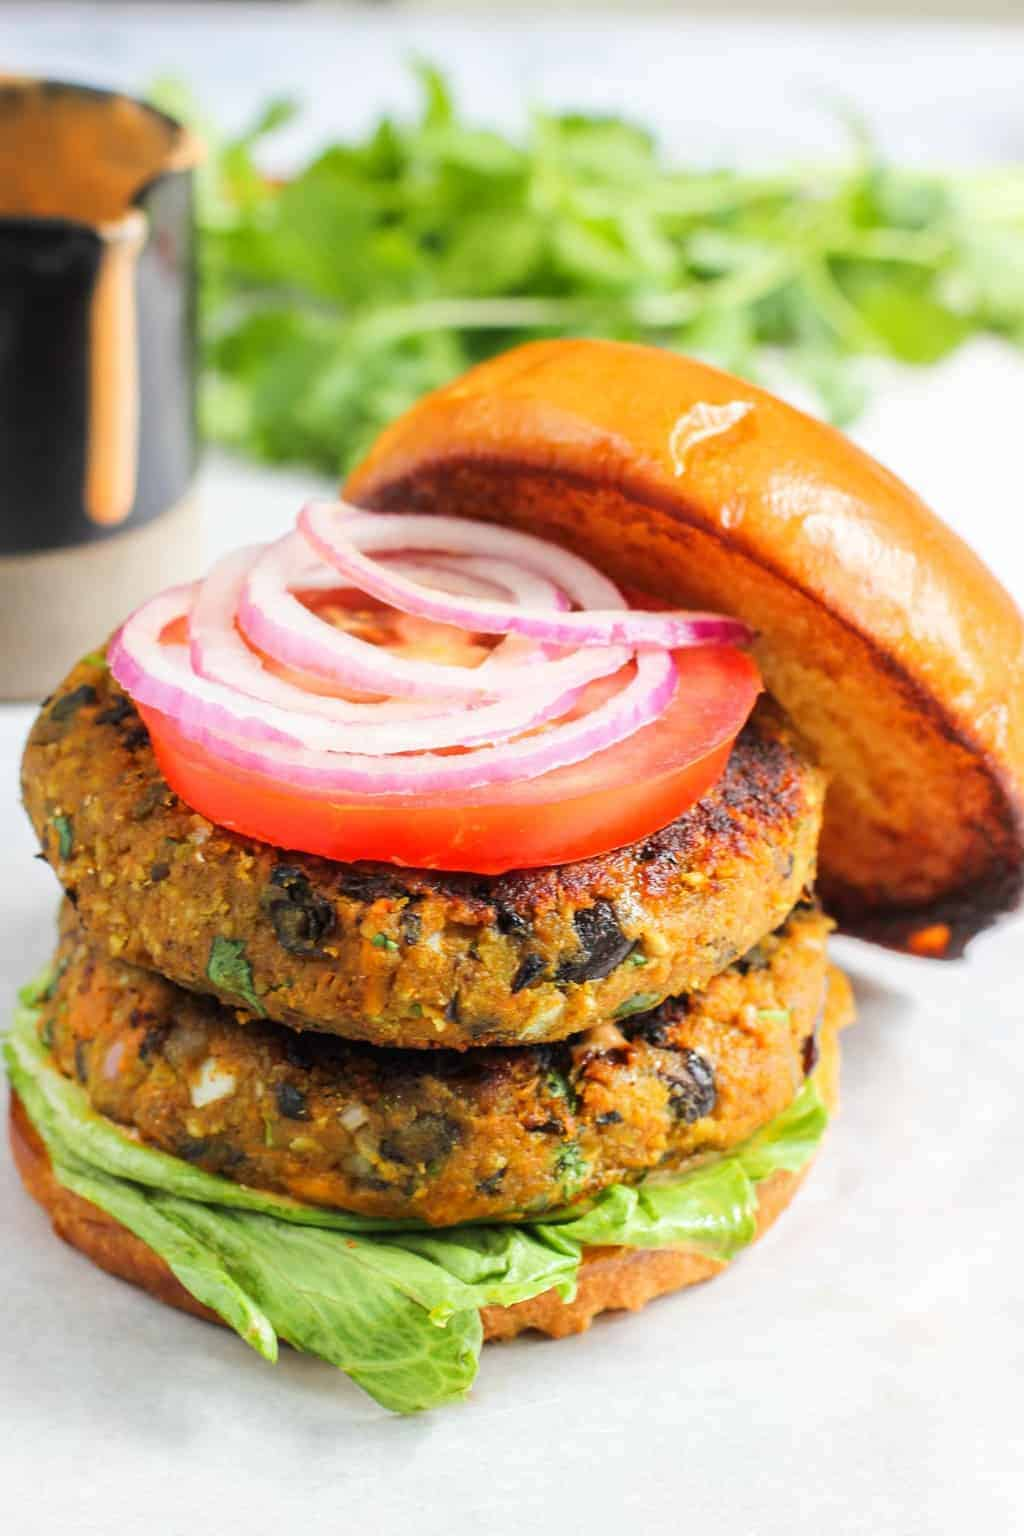 stacked burger patties on buns with lettuce, tomato and onion